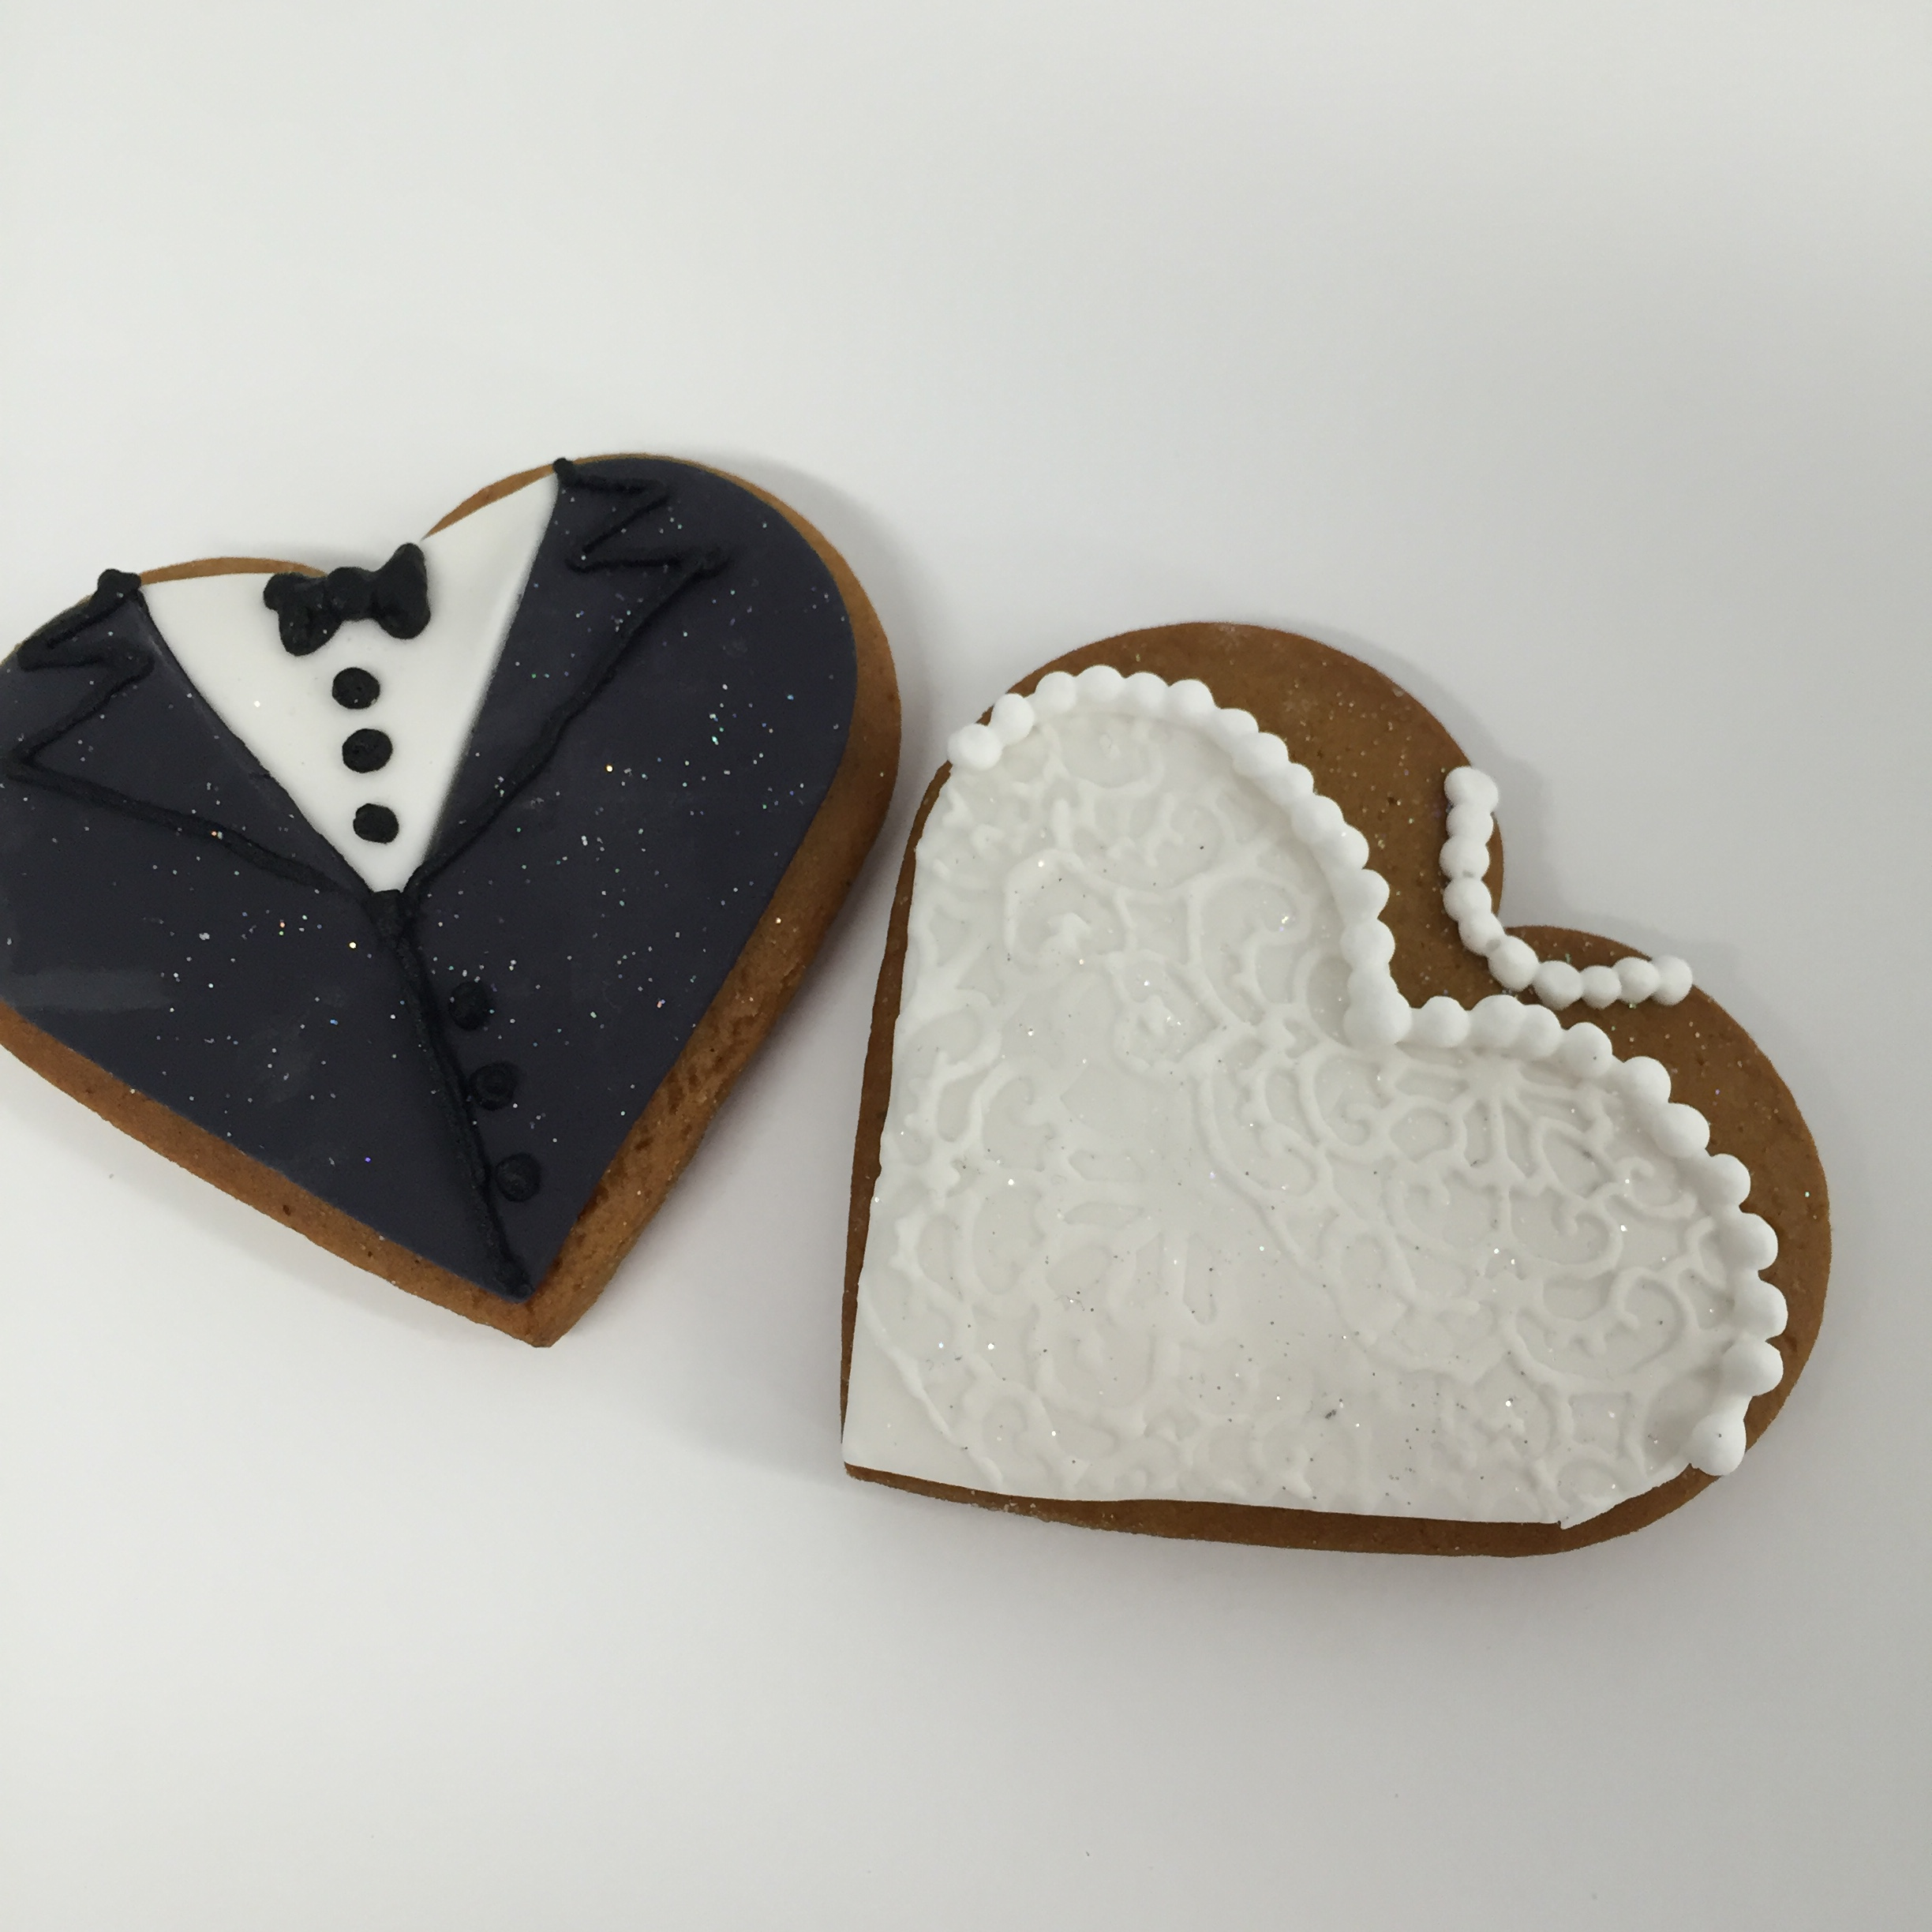 Vanilla pod Wedding Bonbonneires Bride and Groom Biscuits Brisbane.JPG